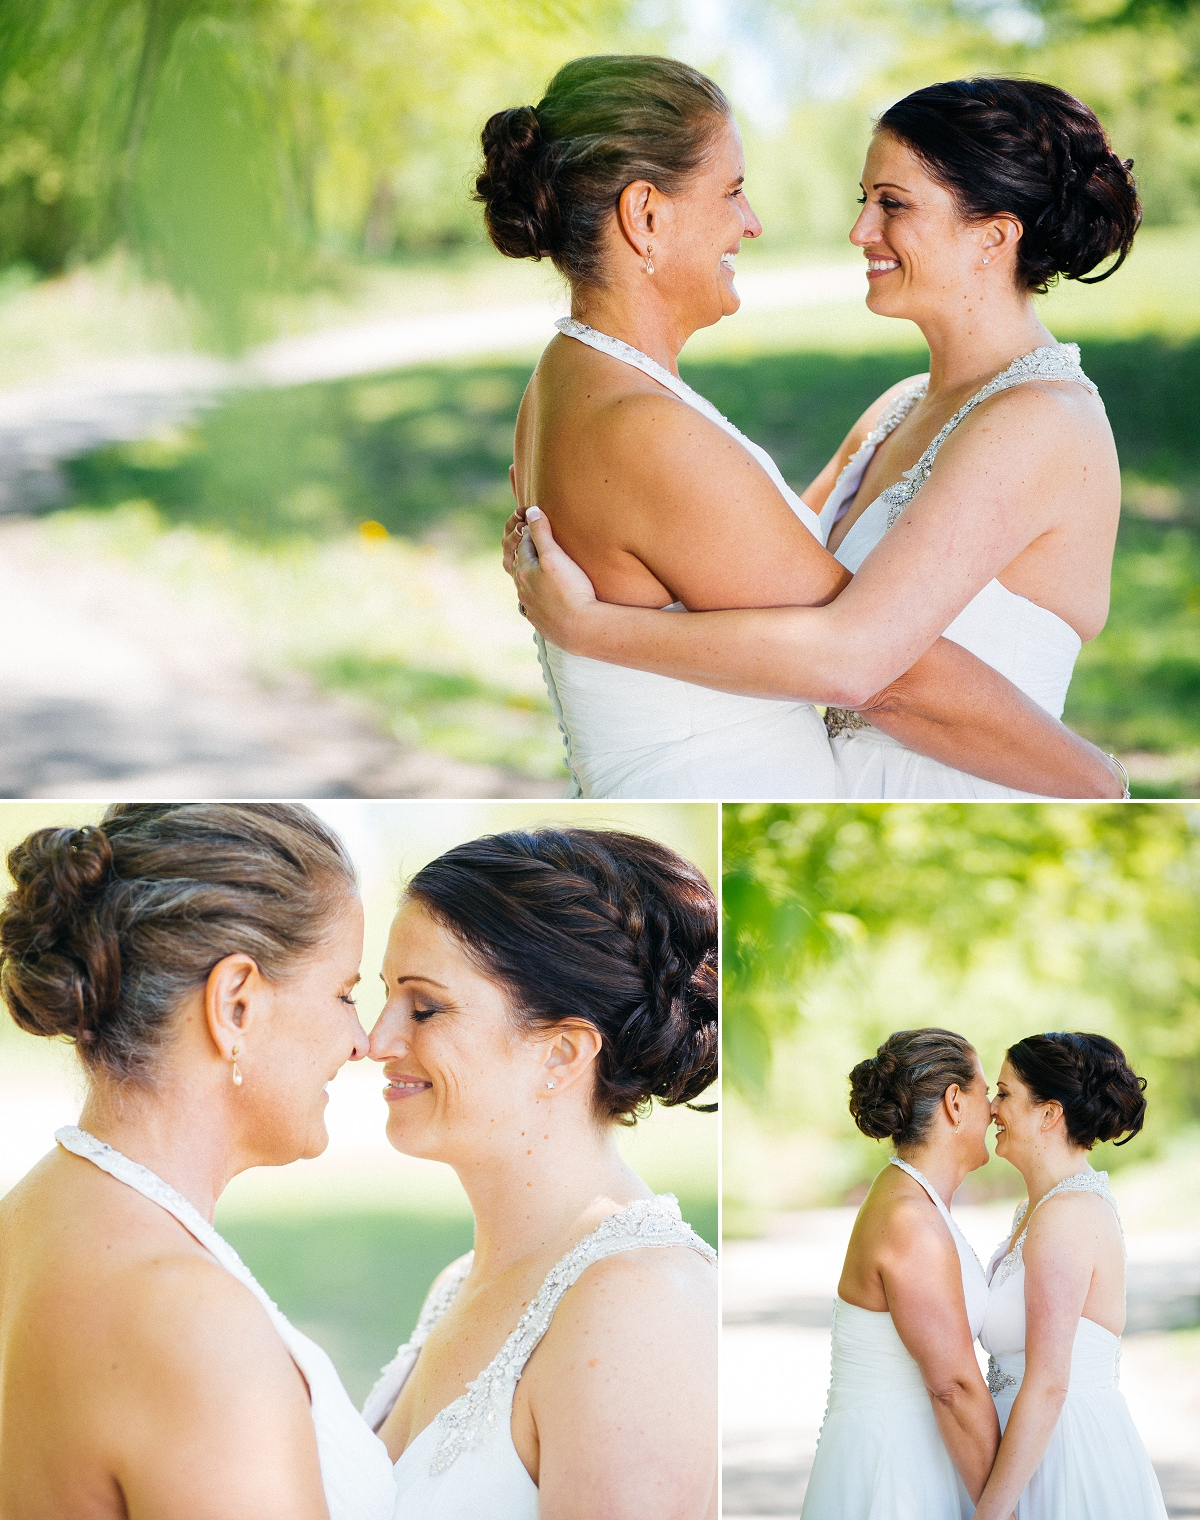 Beth and Gina Shakopee Wedding Photography 11